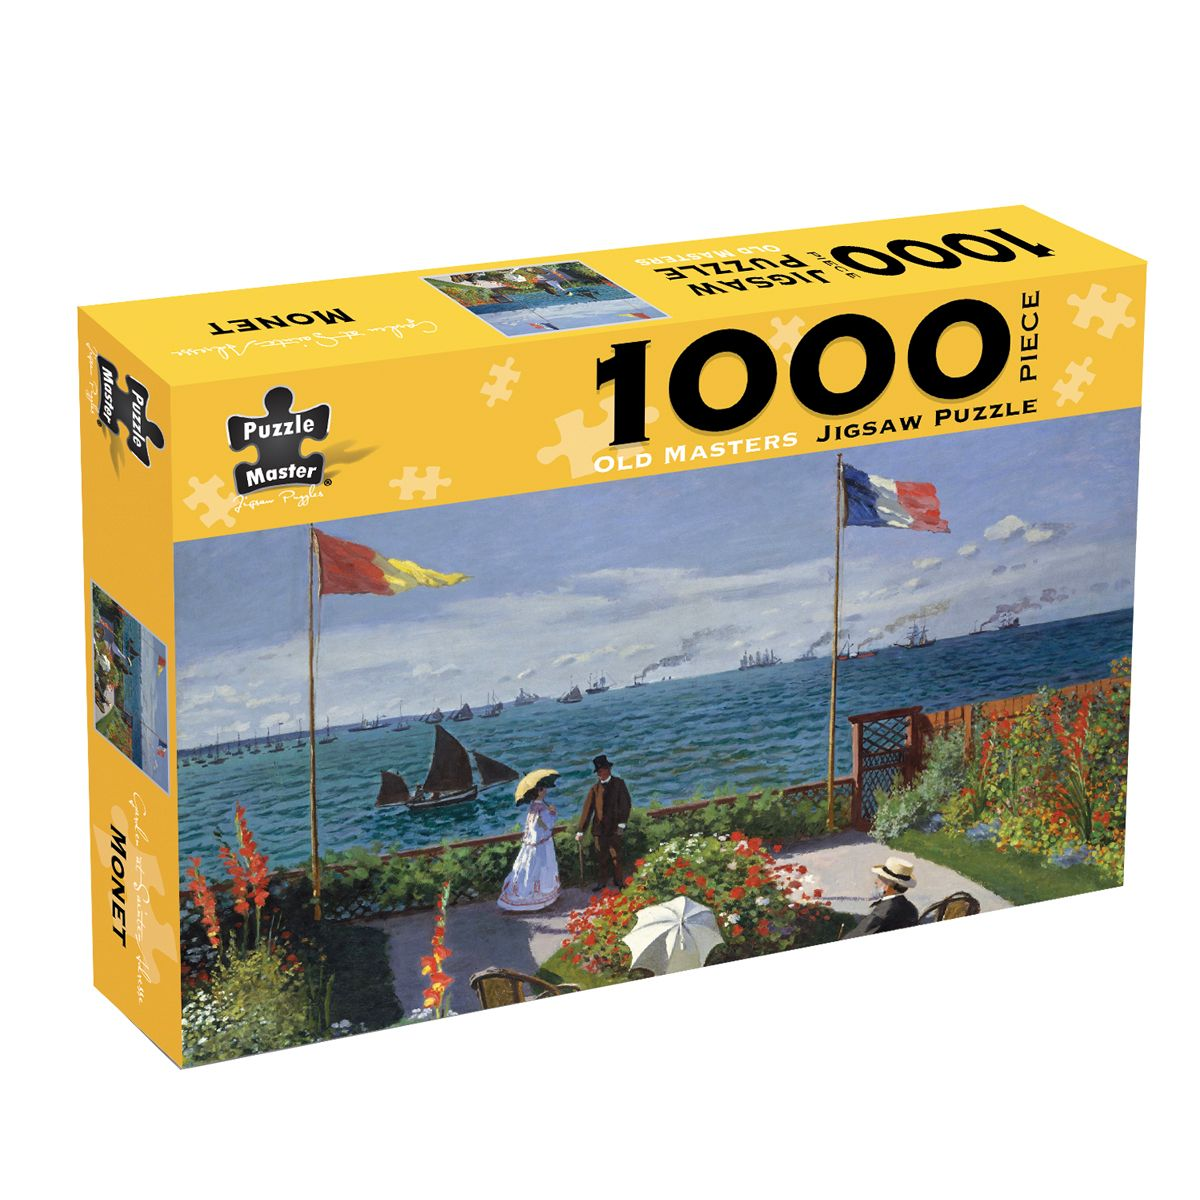 Puzzlers World Old Master 1000pc Jigsaw Puzzle Garden at Sainte-Adresse by Monet